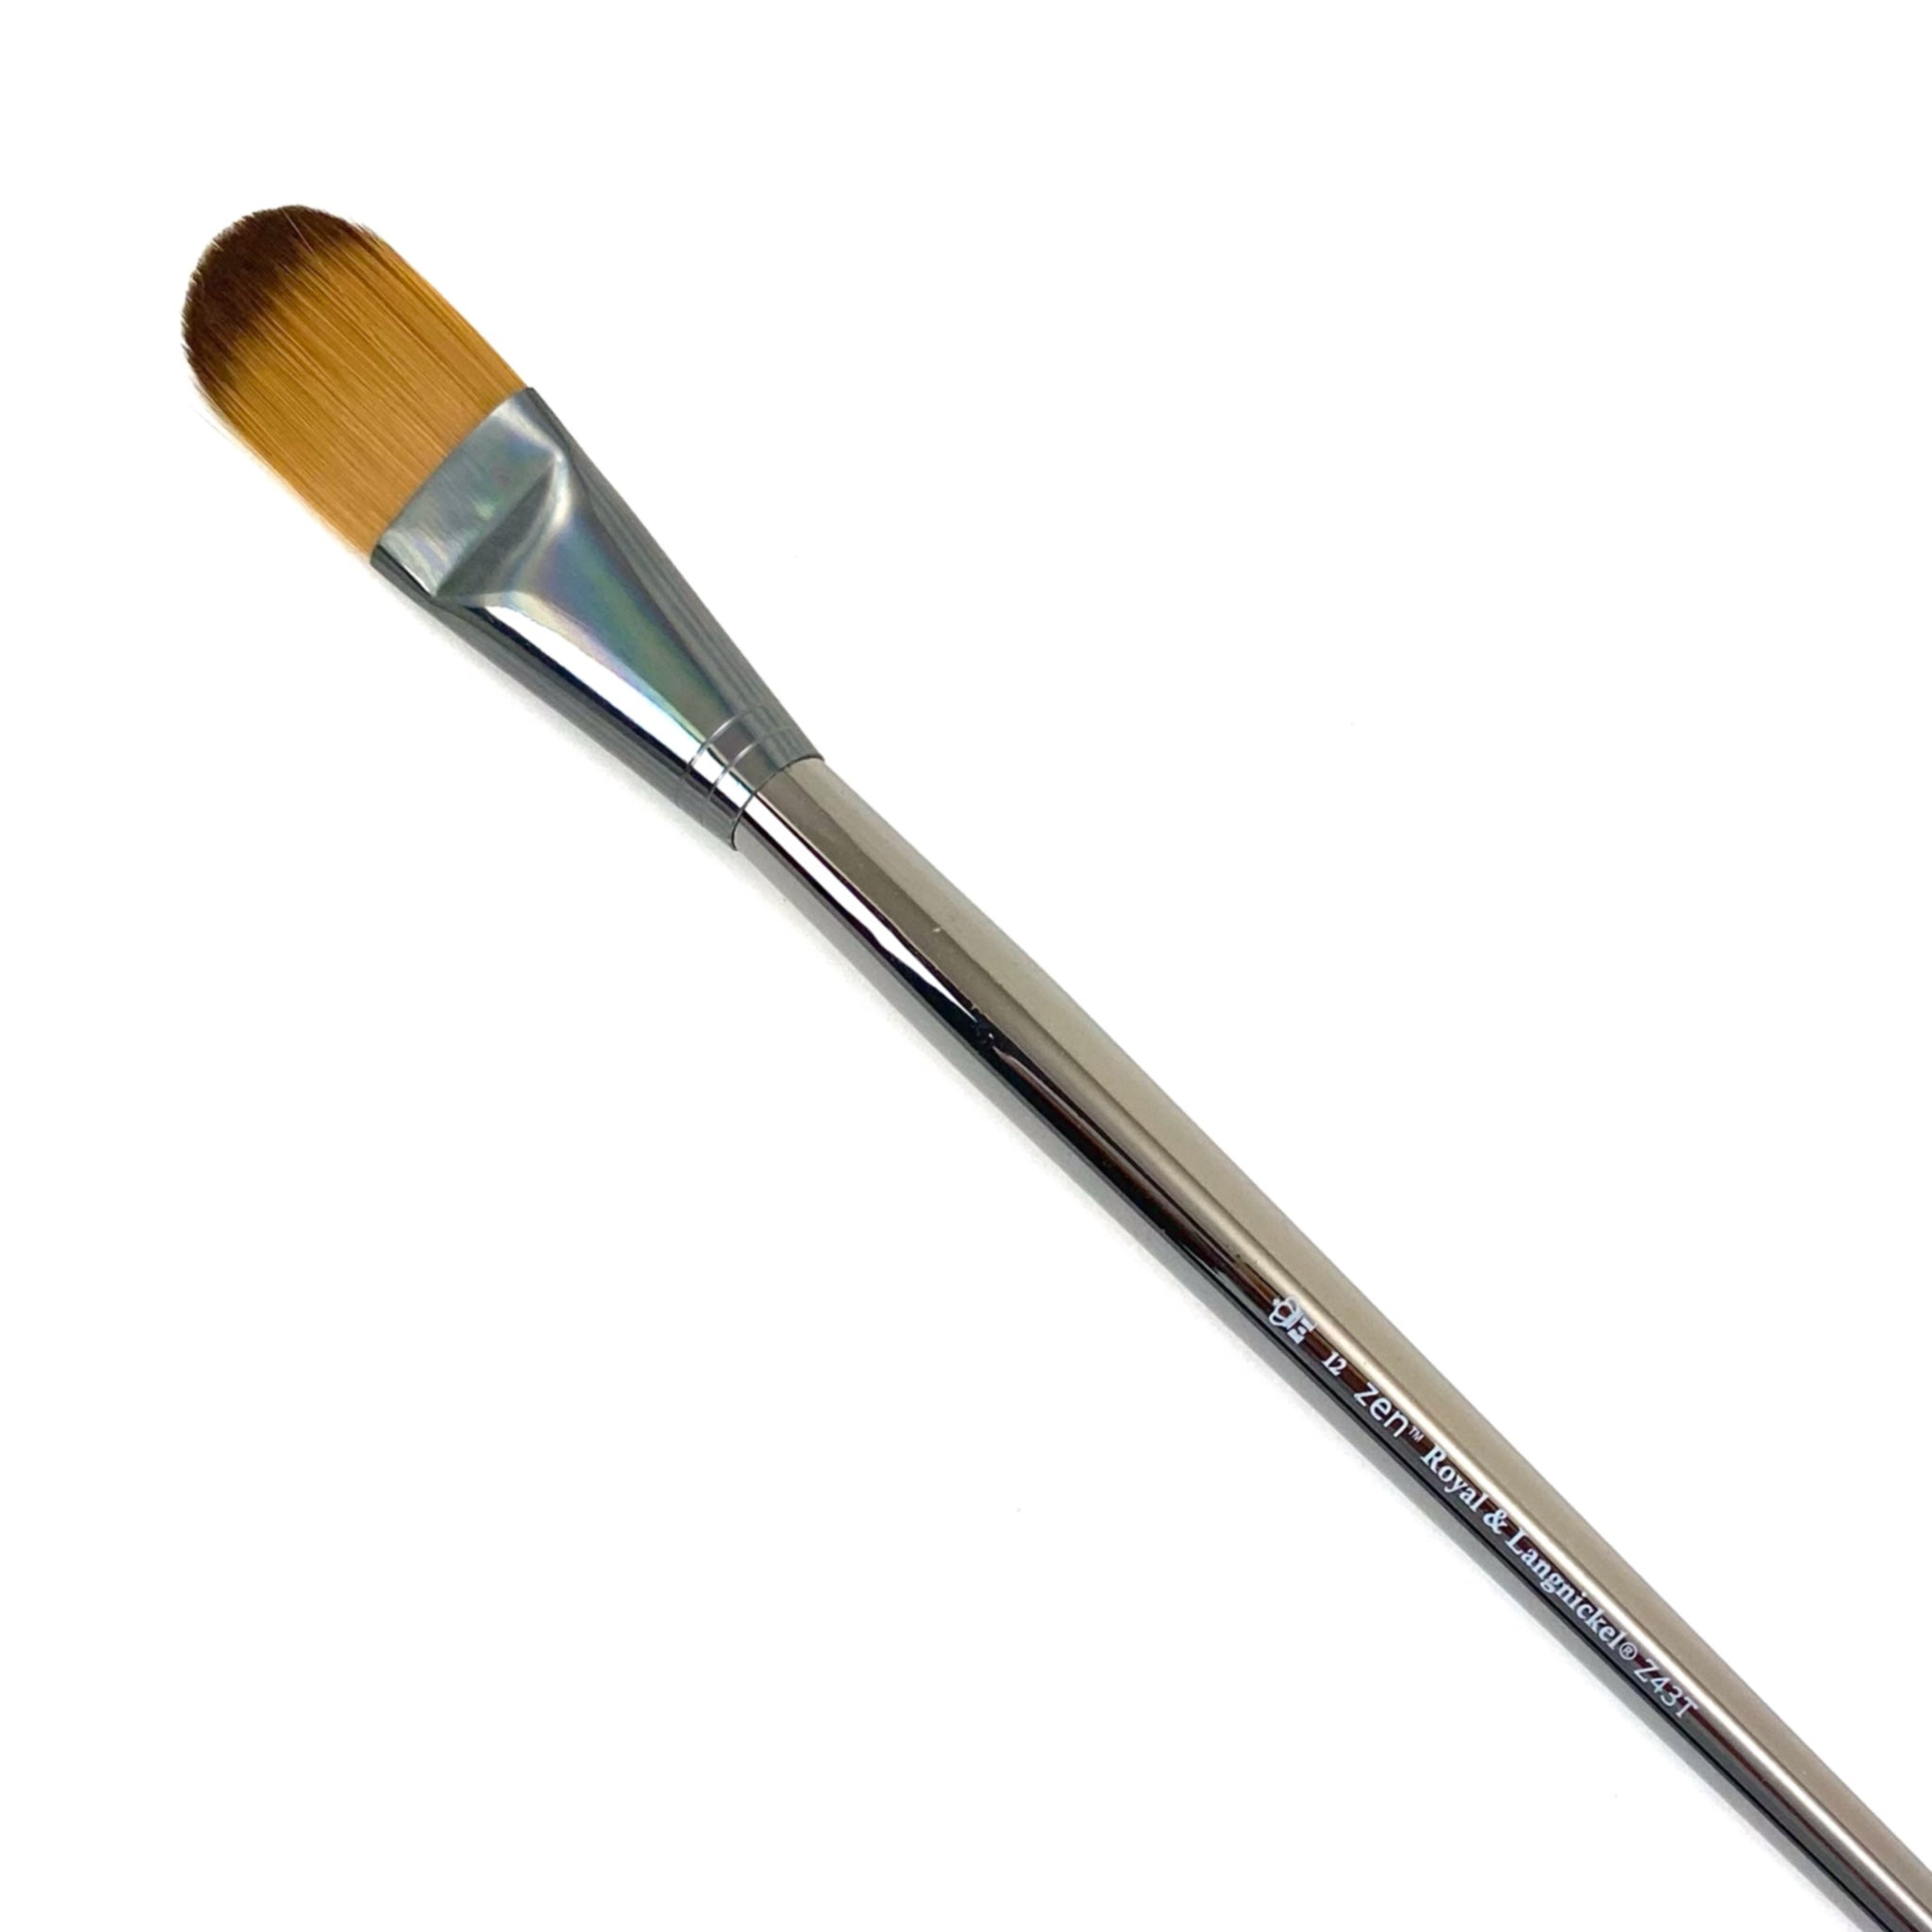 Royal & Langnickle Zen Long Handle Brushes - 43 Series - Filbert / 12 by Royal & Langnickle - K. A. Artist Shop